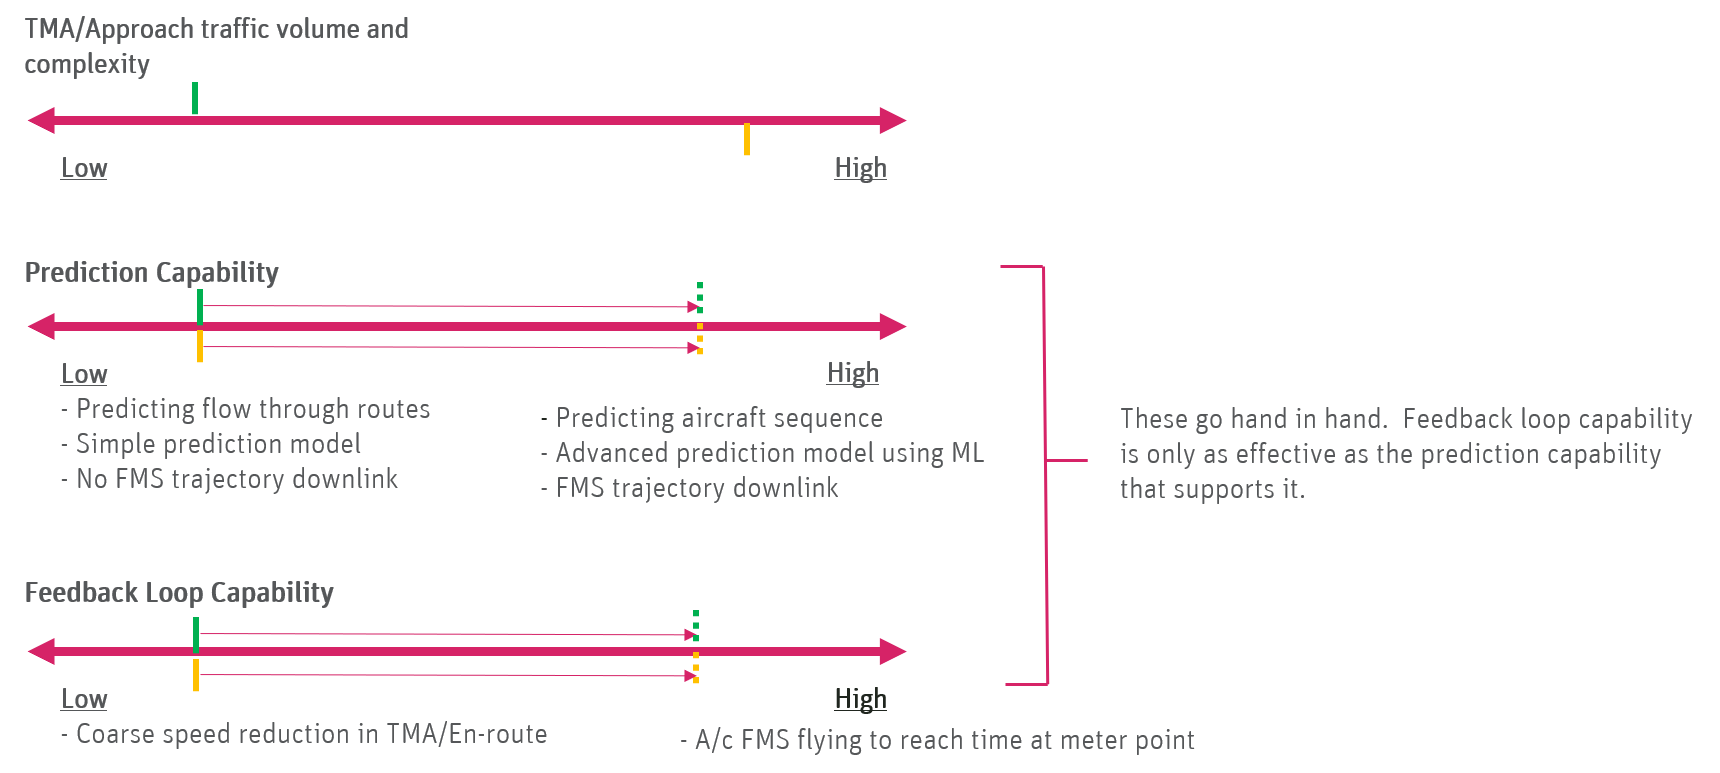 Illustration showing evolving predictability and feedback loop capabilities